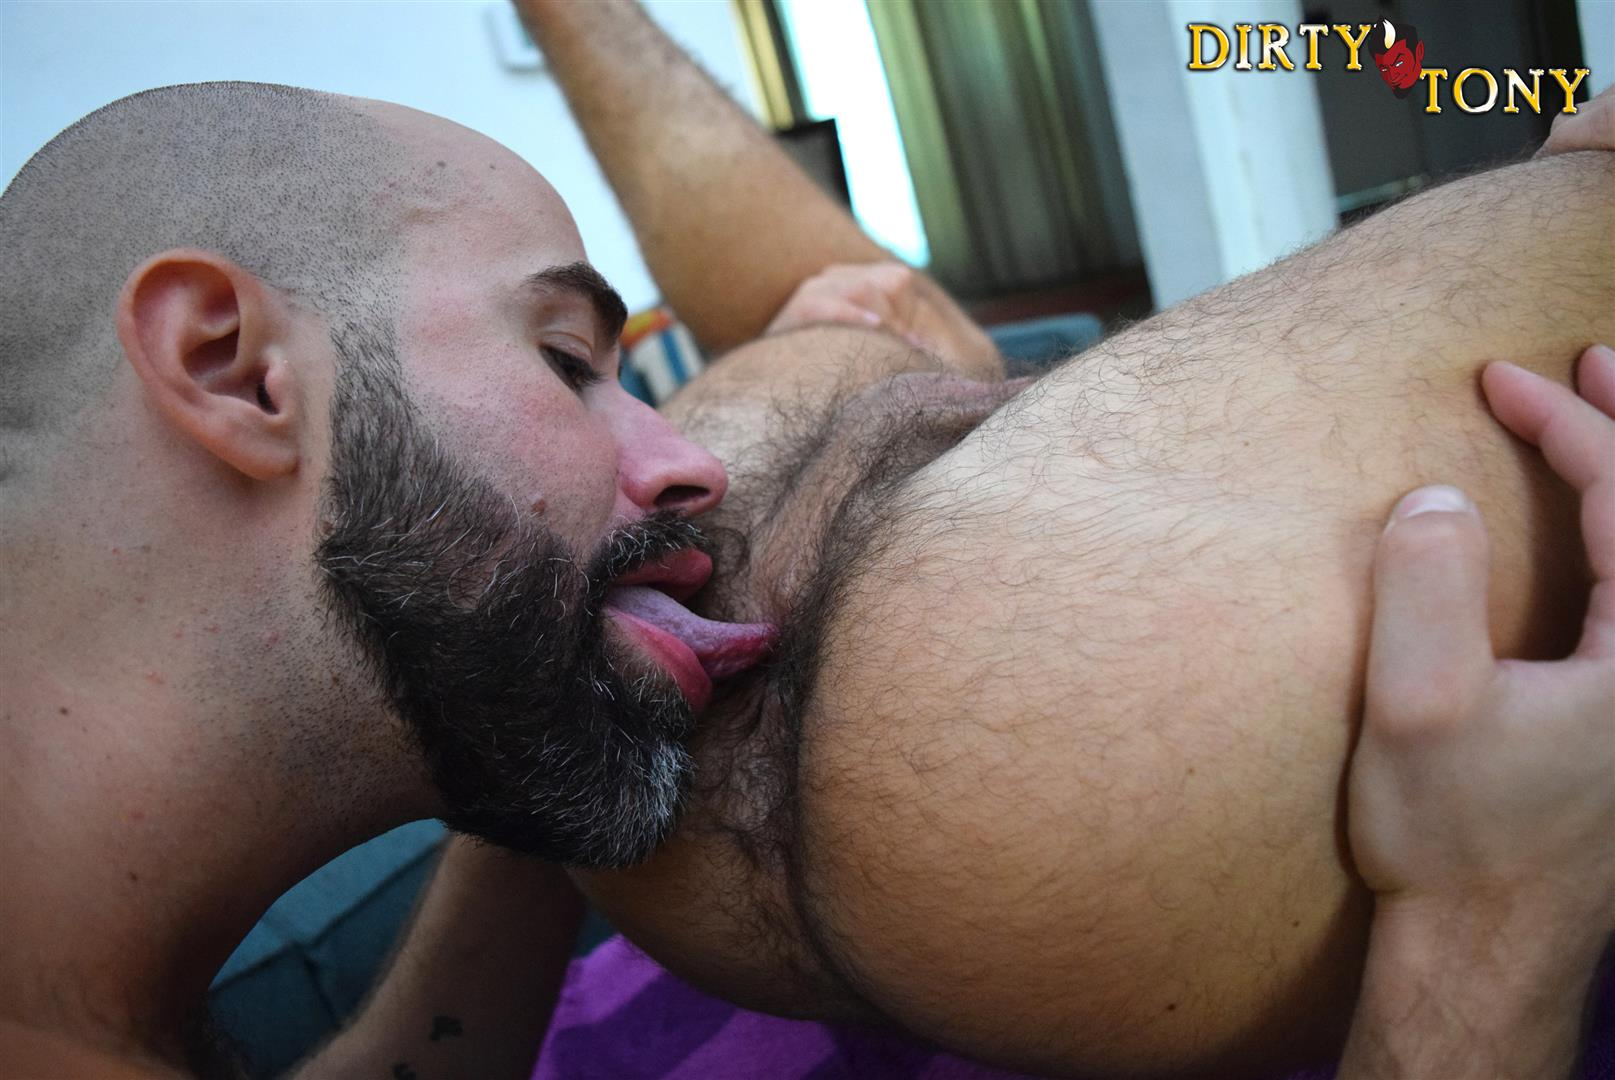 Dirty Tony Damon Andros and Aarin Asker Bareback Sex Video Amateur Gay Porn 03 Damon Andros Dominating Sub Aarin Asker Bareback